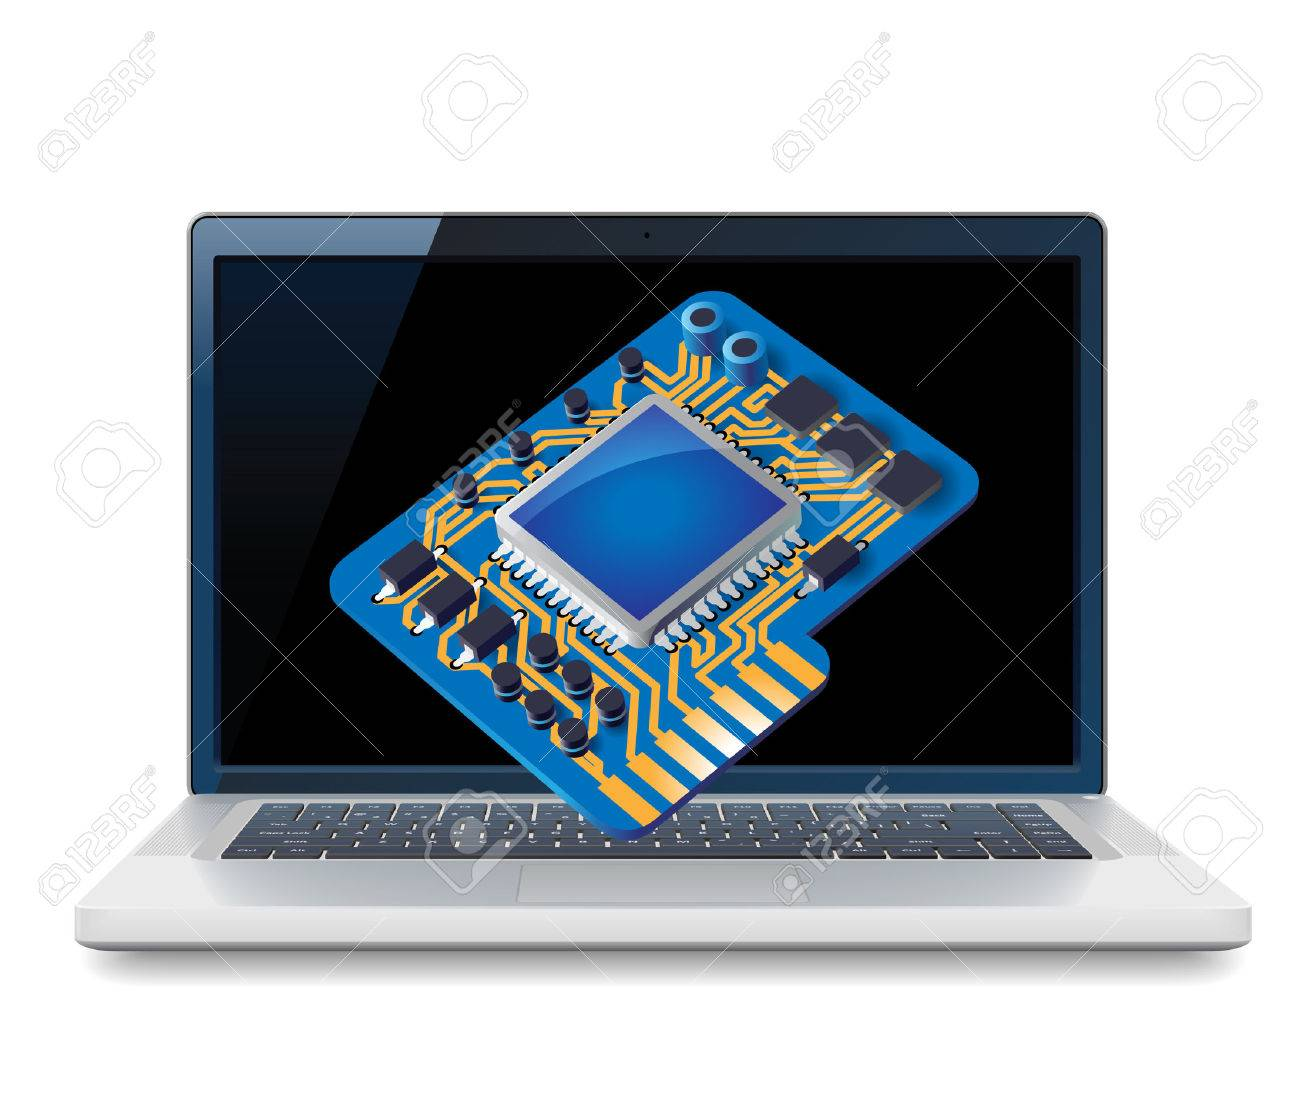 Laptop and circuit concept.  illustration for technical support, computer hardware store, repair service. Stock Vector - 7023399